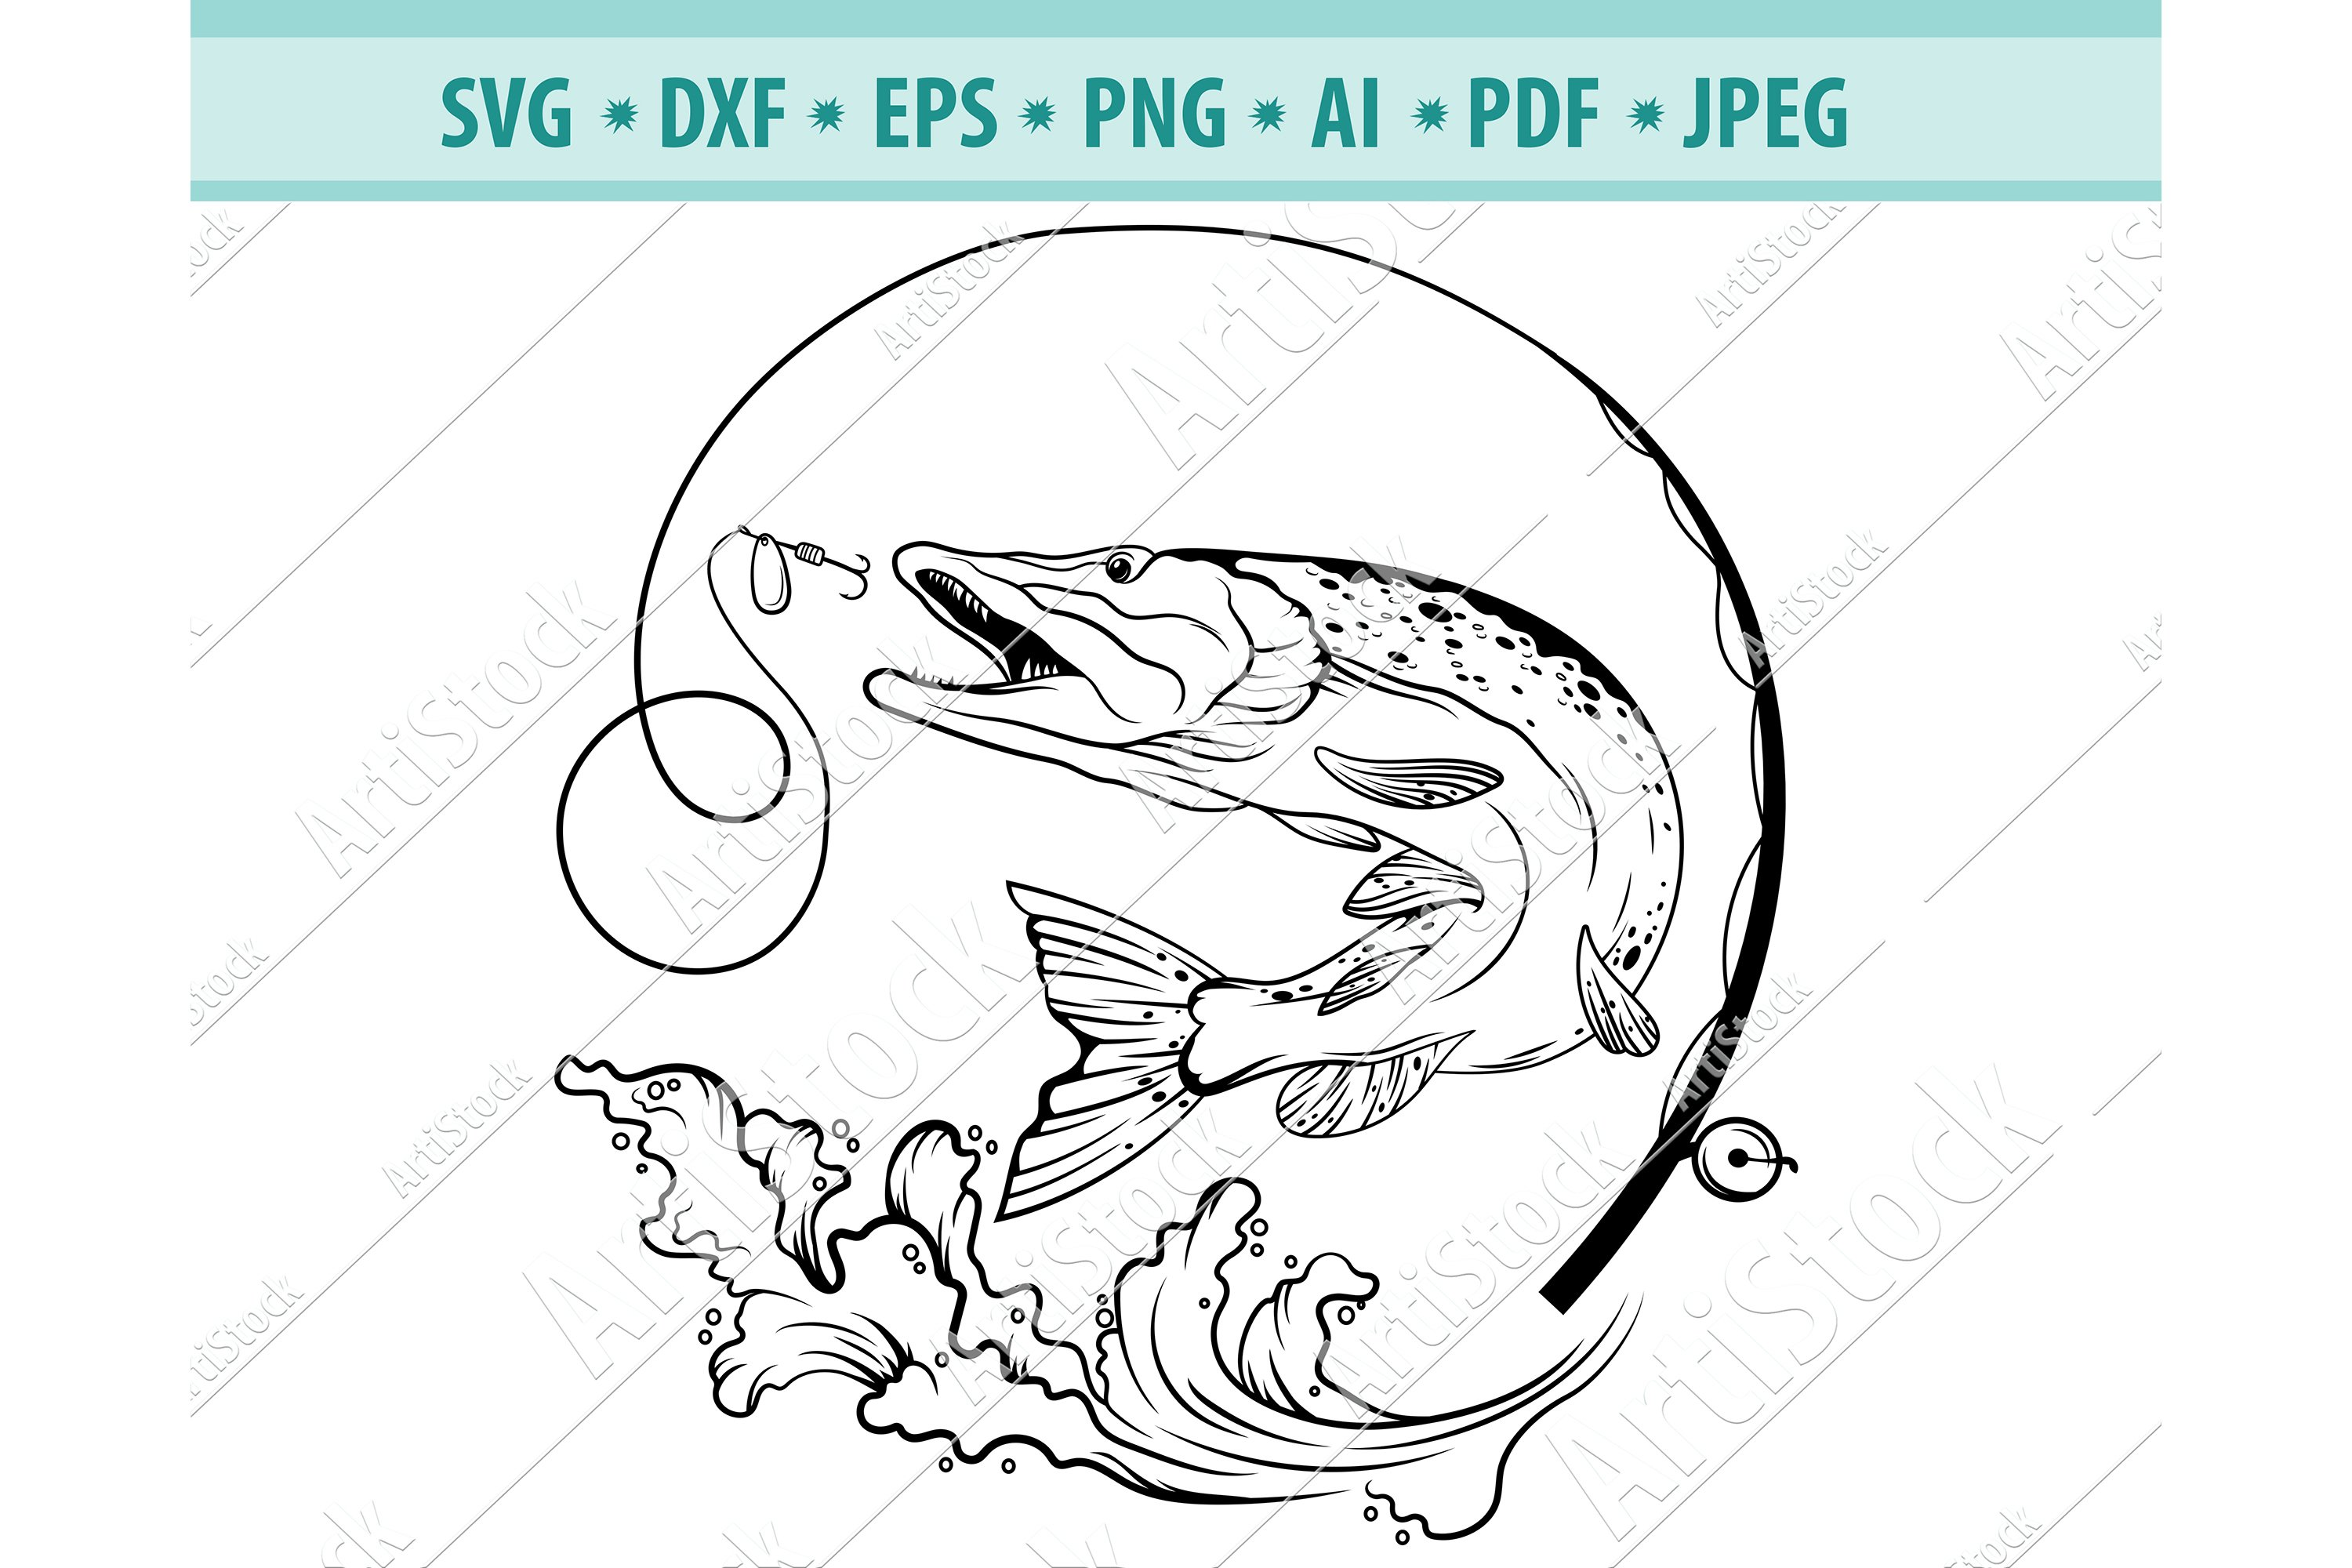 Download Svg A2 Eps Png Partial Fishing Pole Vector Image Svg File Digital Cutting File Ai Dxf Digital Art Collectibles Delage Com Br